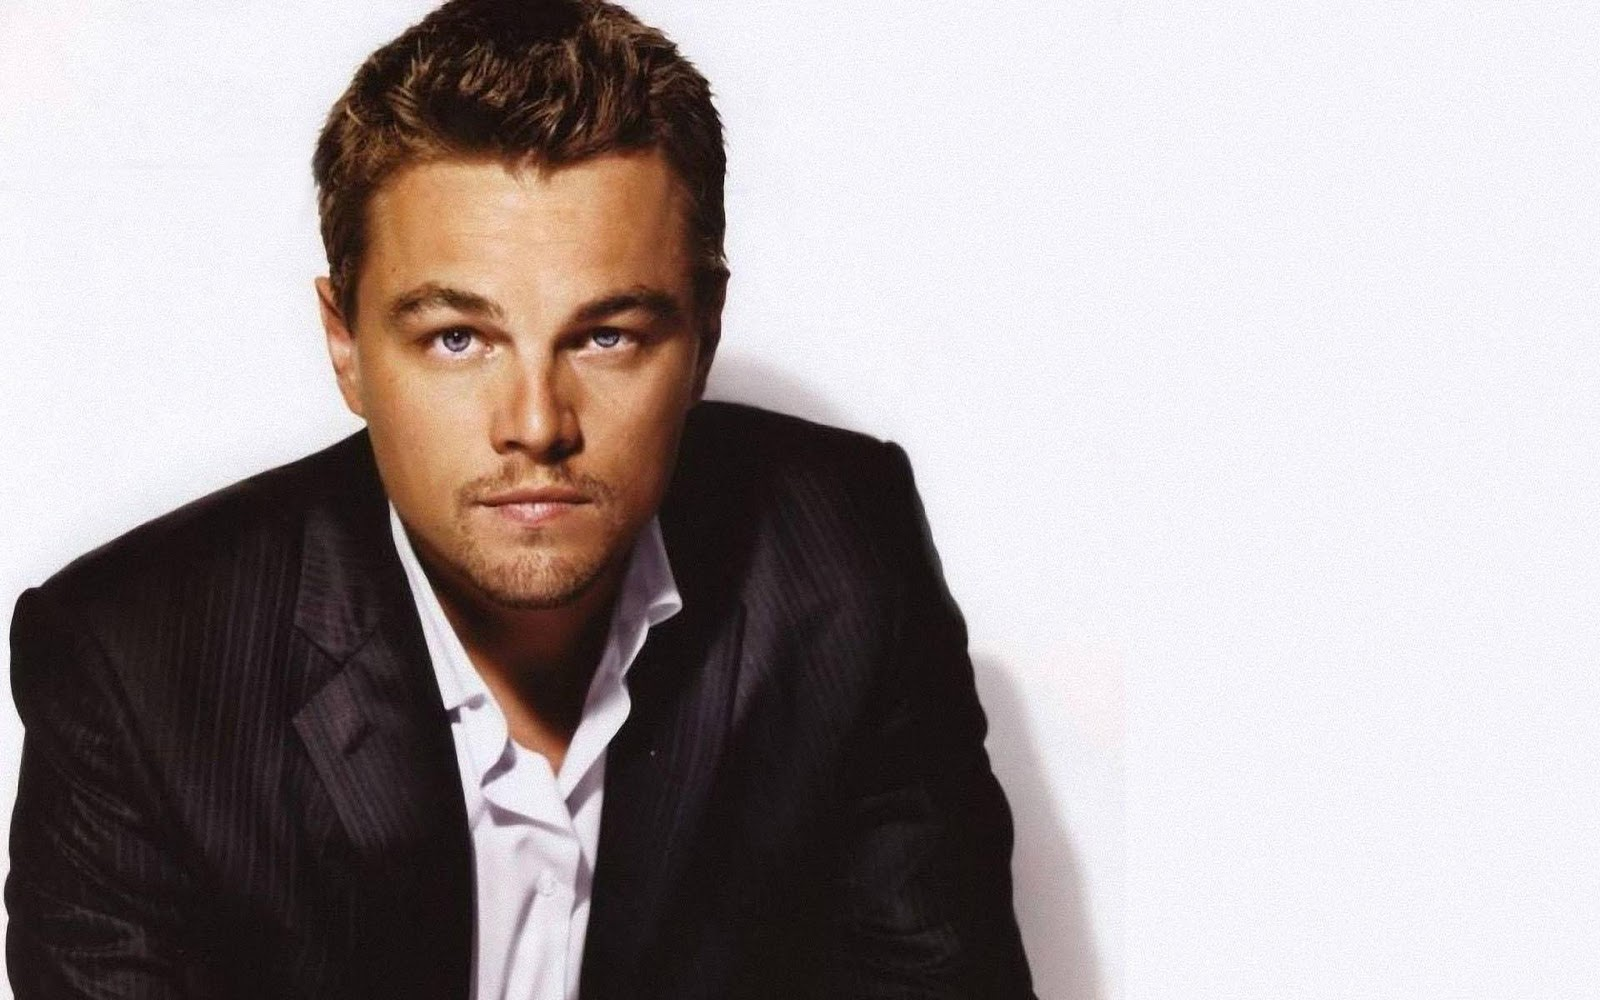 http://4.bp.blogspot.com/-7CO0Fhohjpc/TtcF82jdIMI/AAAAAAAAAbY/U96WwfKz5j4/s1600/Leonardo-DiCaprio-pictures-desktop-Wallpapers-HD-photo-images-20.jpg